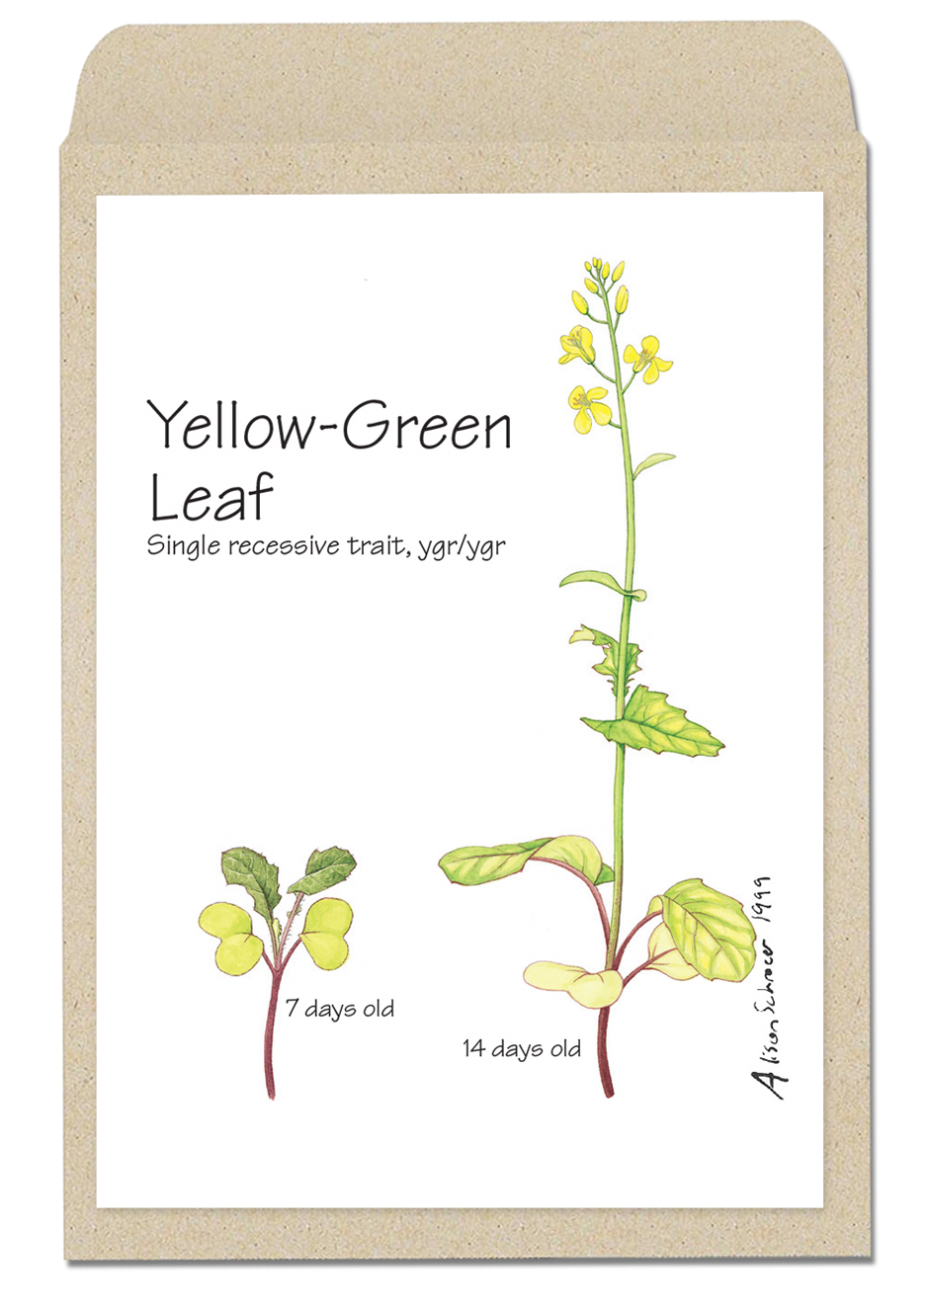 yellowleaf